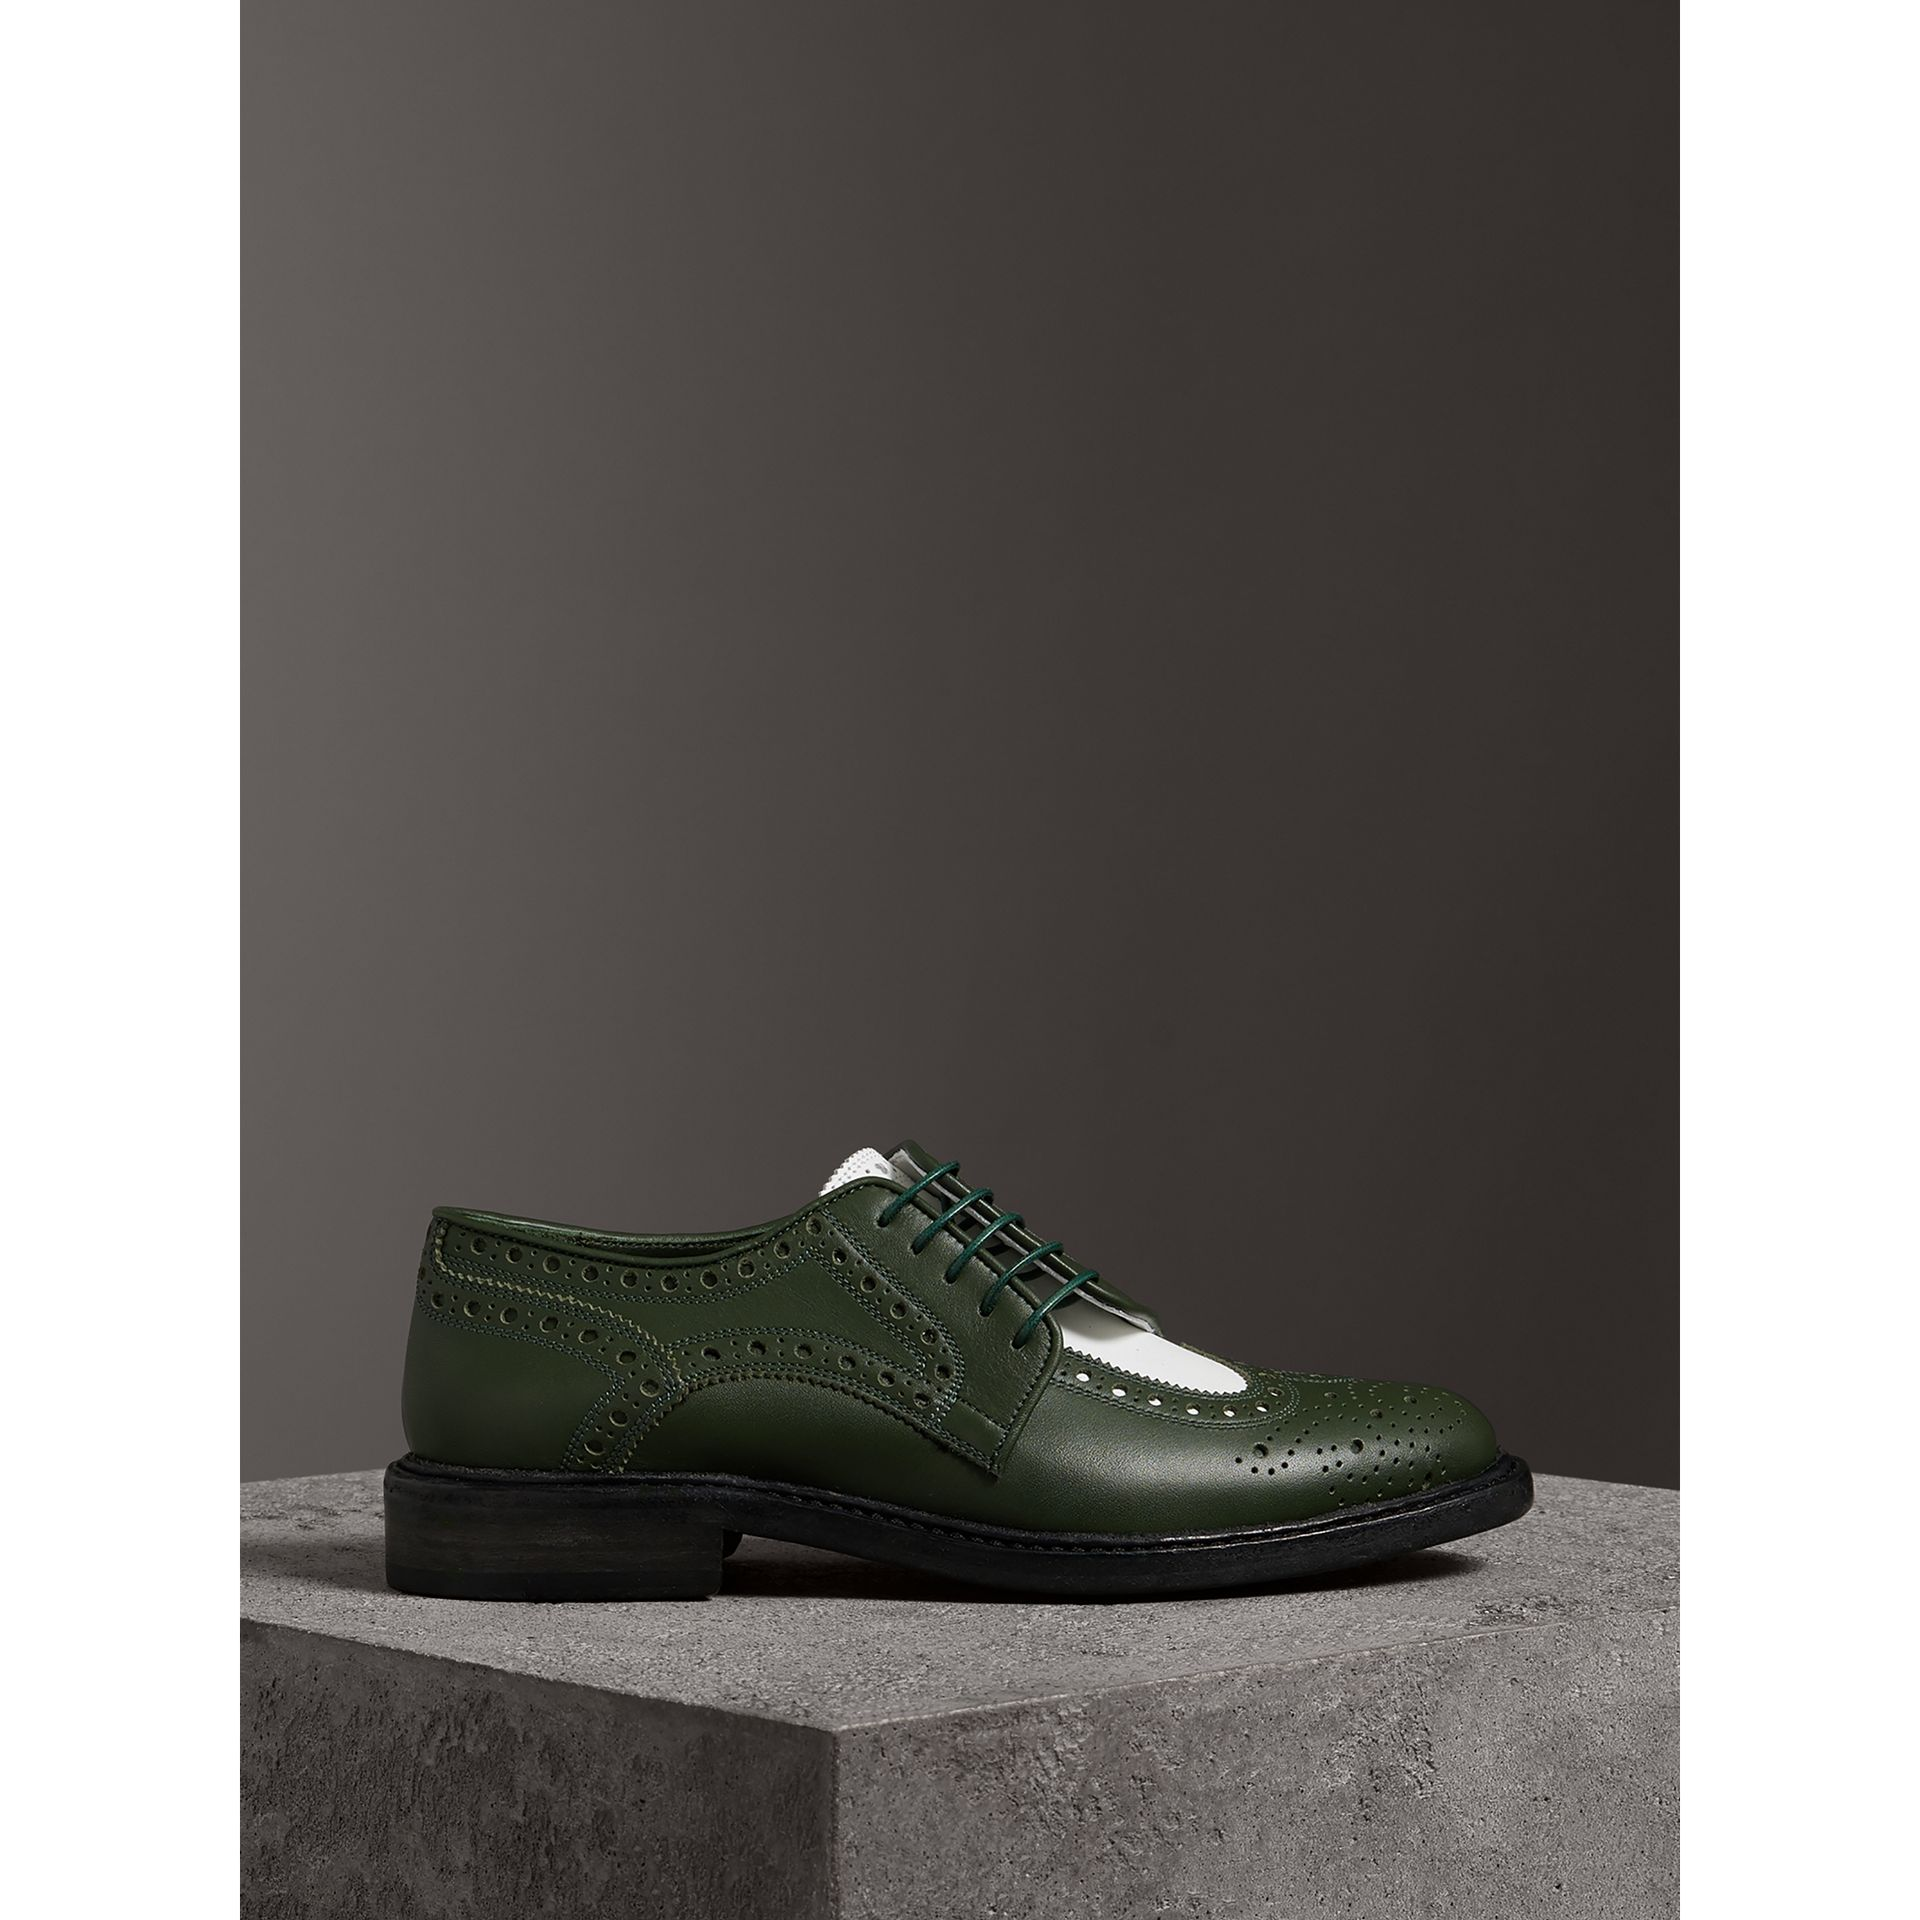 Two-tone Asymmetric Closure Leather Brogues in Dark Green - Women | Burberry Singapore - gallery image 3